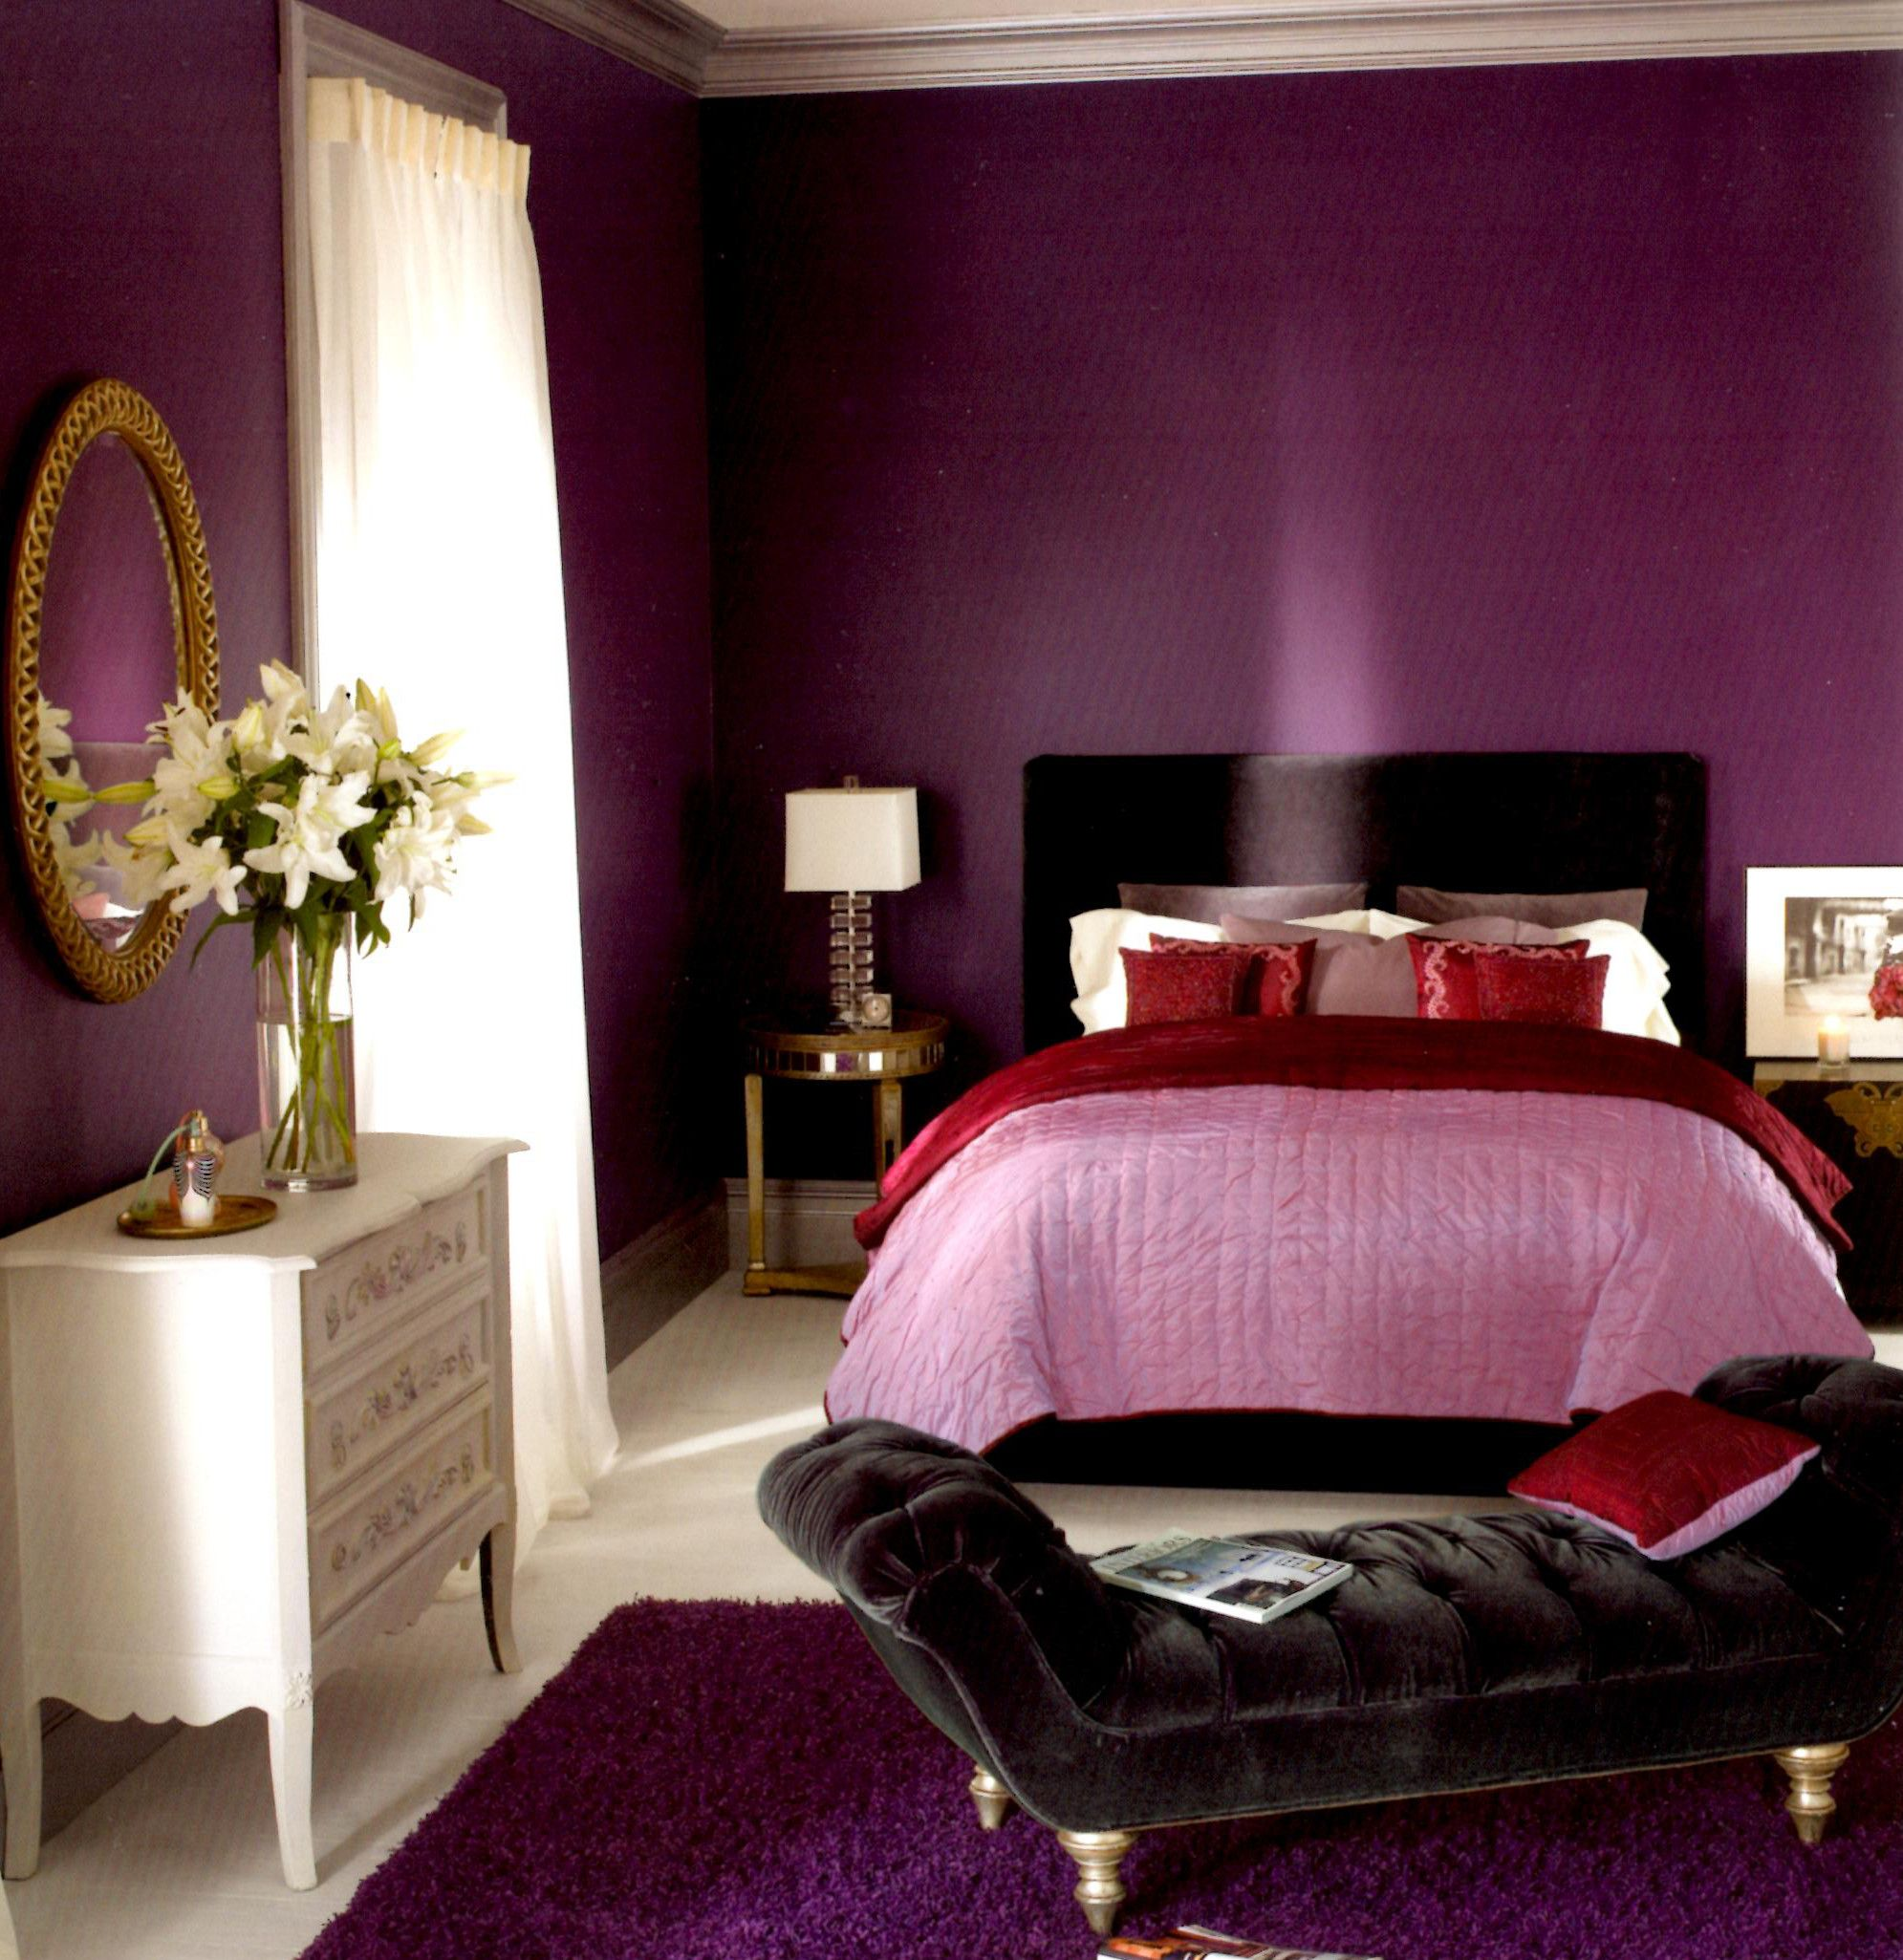 Paint Color Combinations For Bedroom Remarkable Purple Wall Paneling Colors As Smart Bedroom Paint